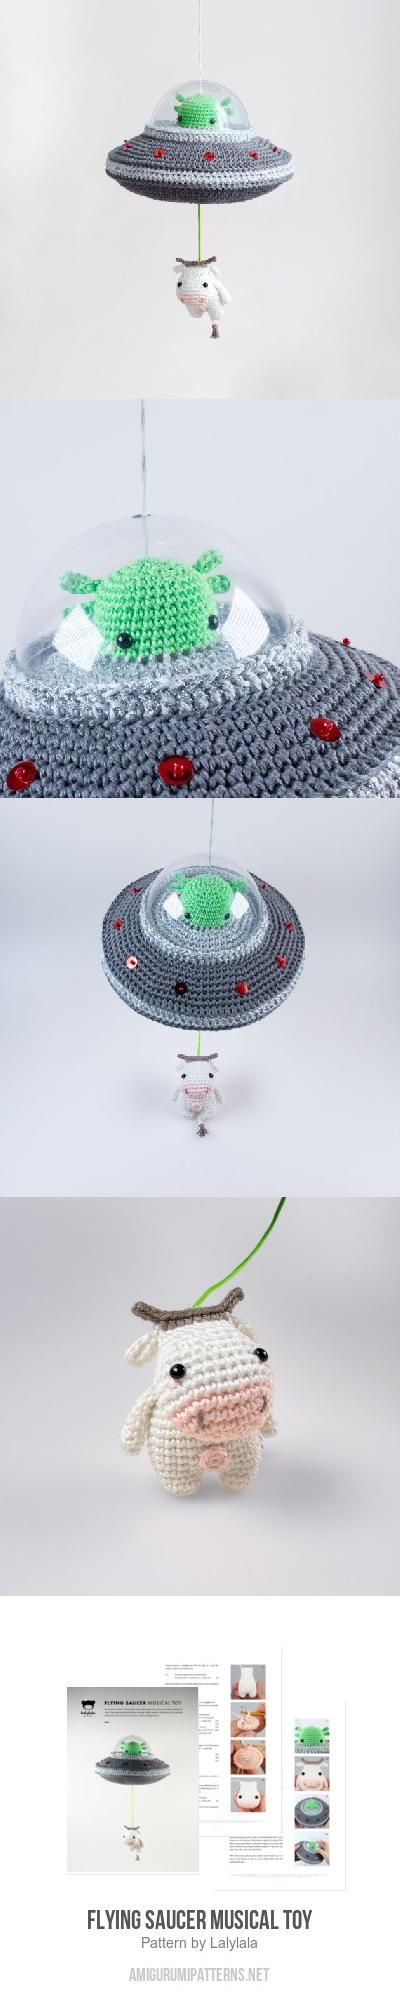 Flying Saucer Musical Toy amigurumi pattern